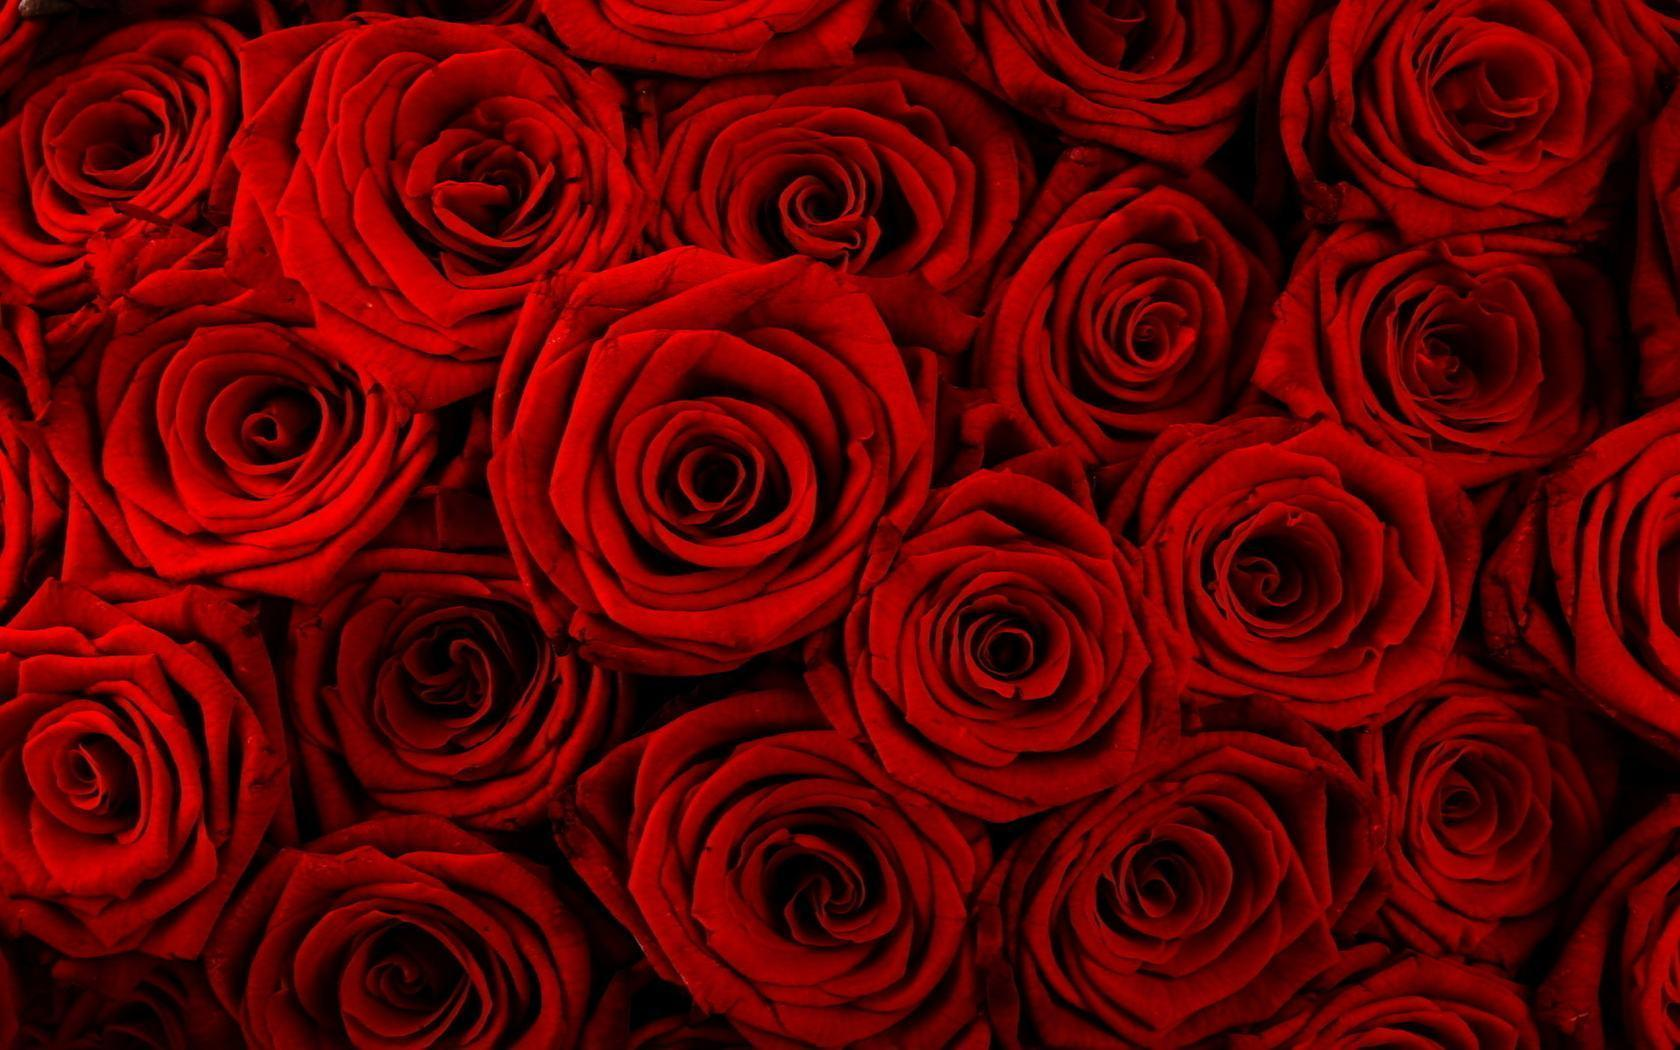 Red rose flower backgrounds wallpaper cave - Red rose flower hd images ...